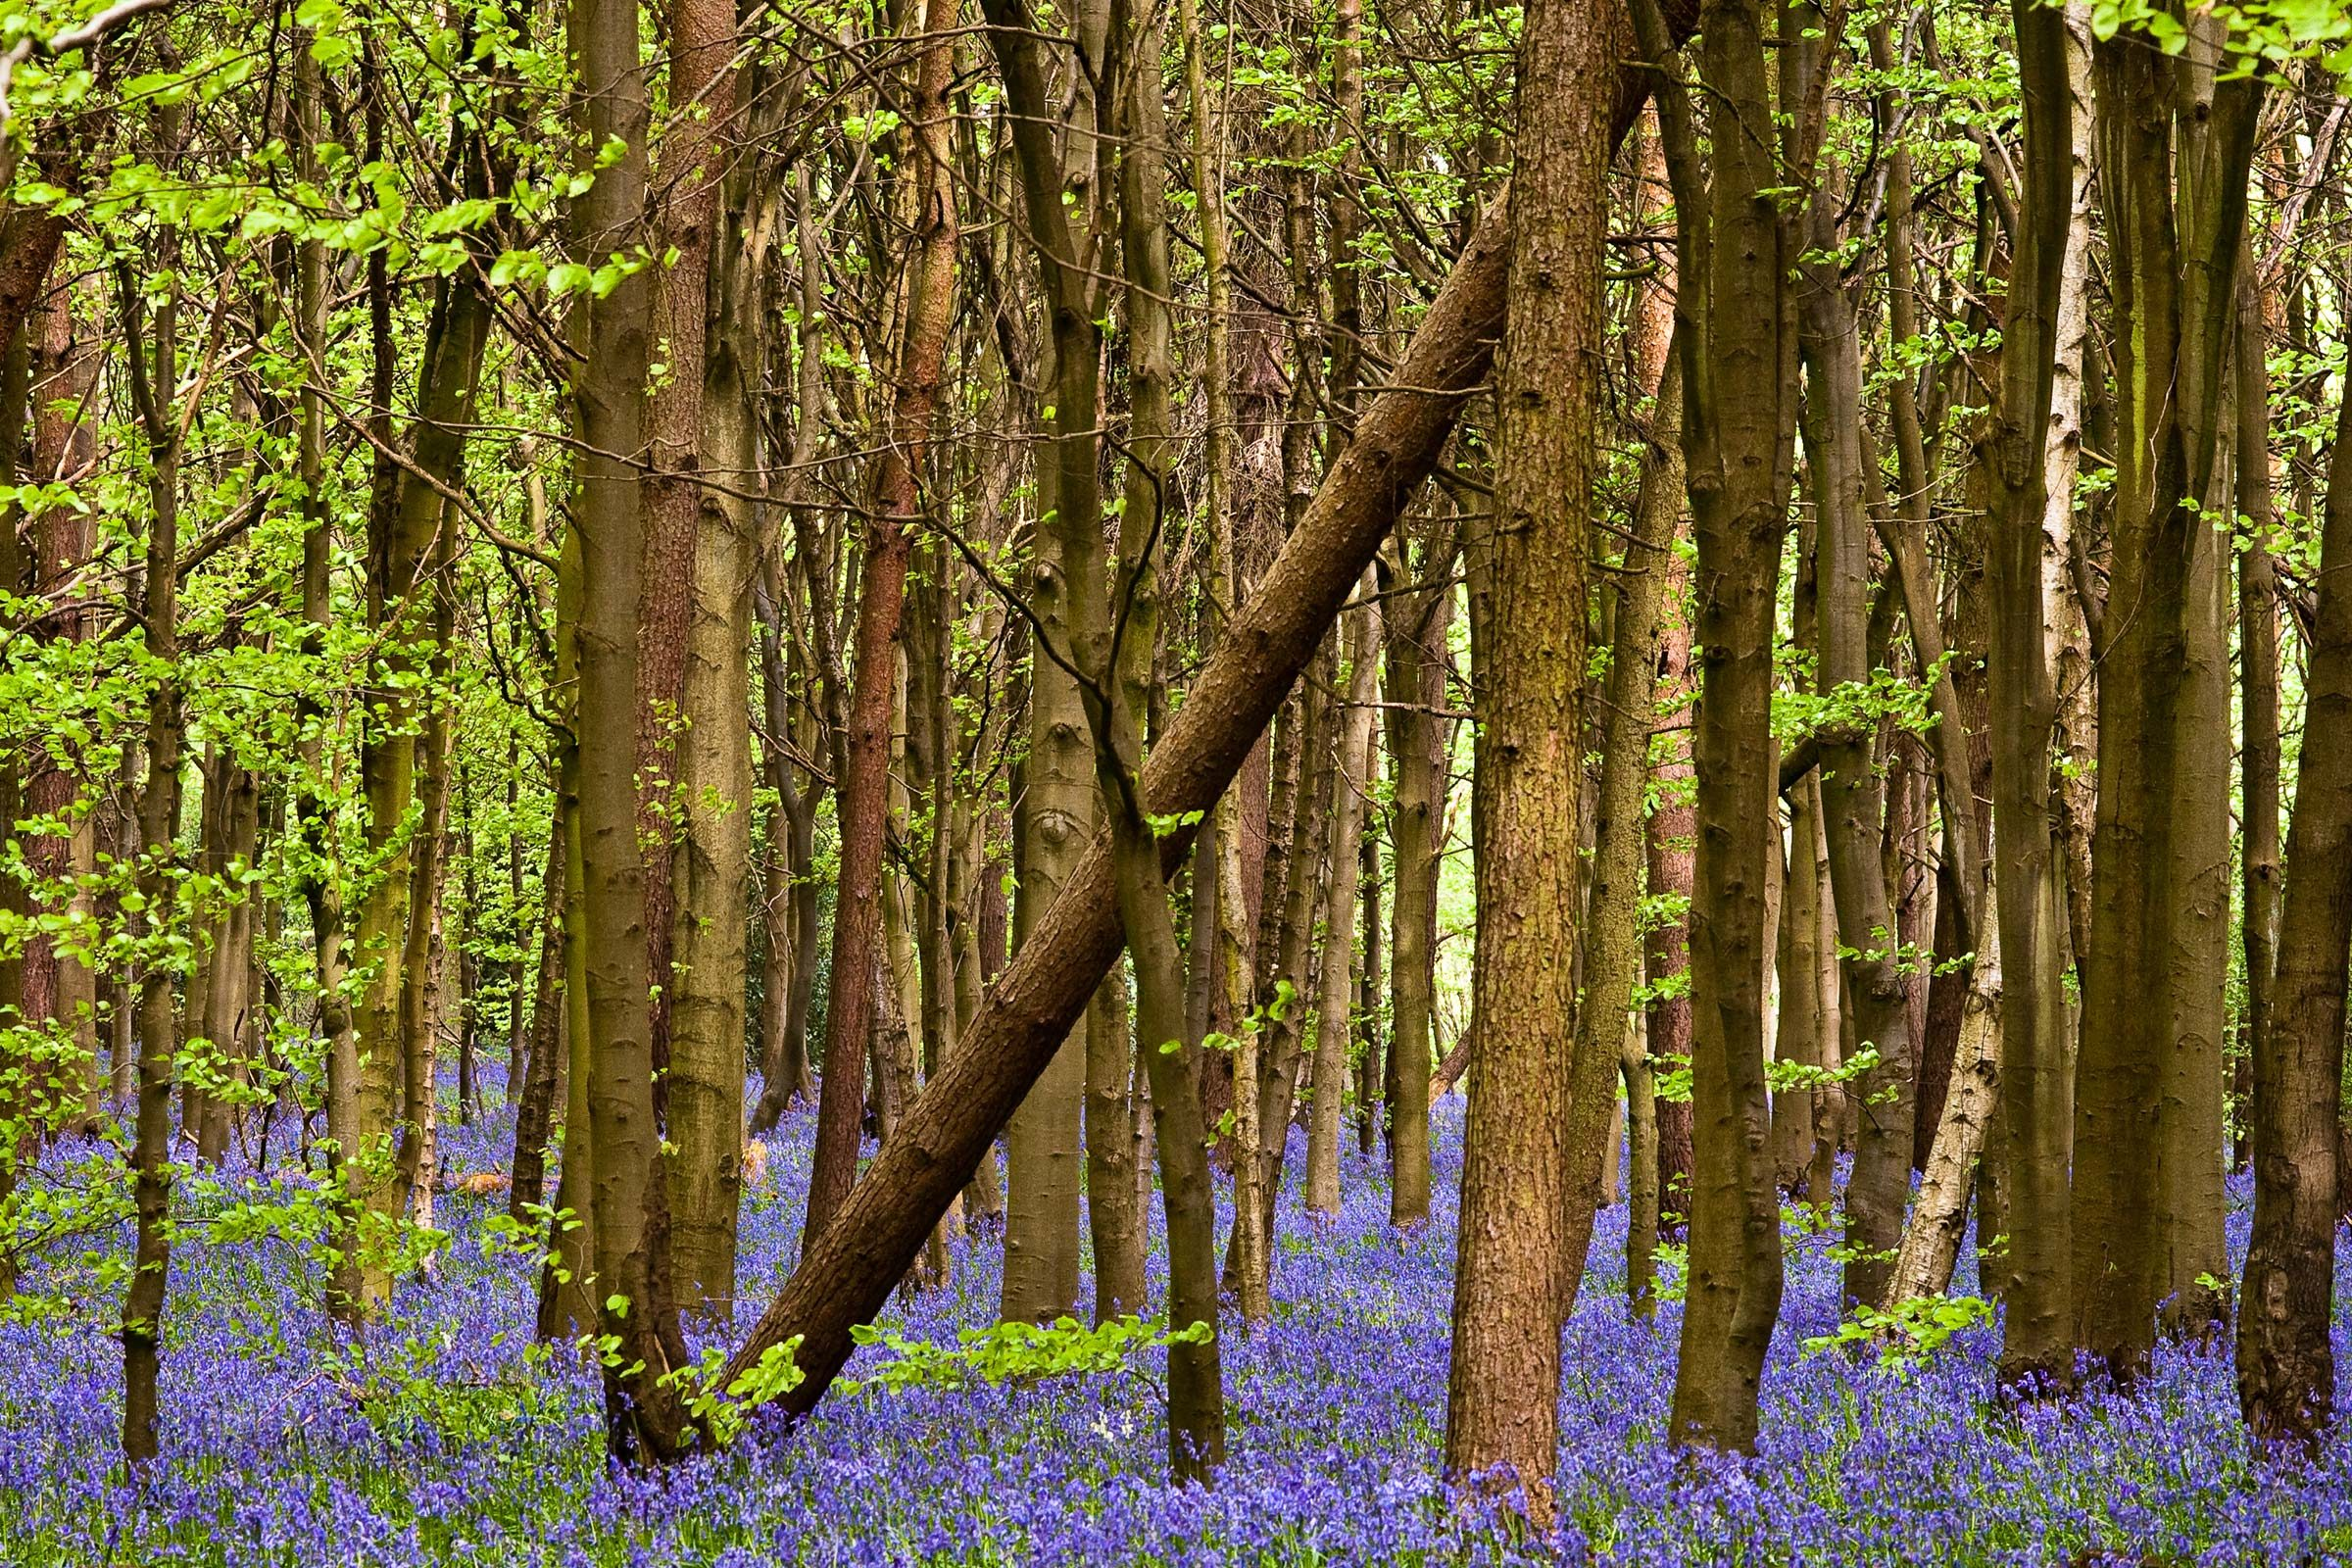 Bluebells in Whippendell Woods located in Watford, Hertfordshire.